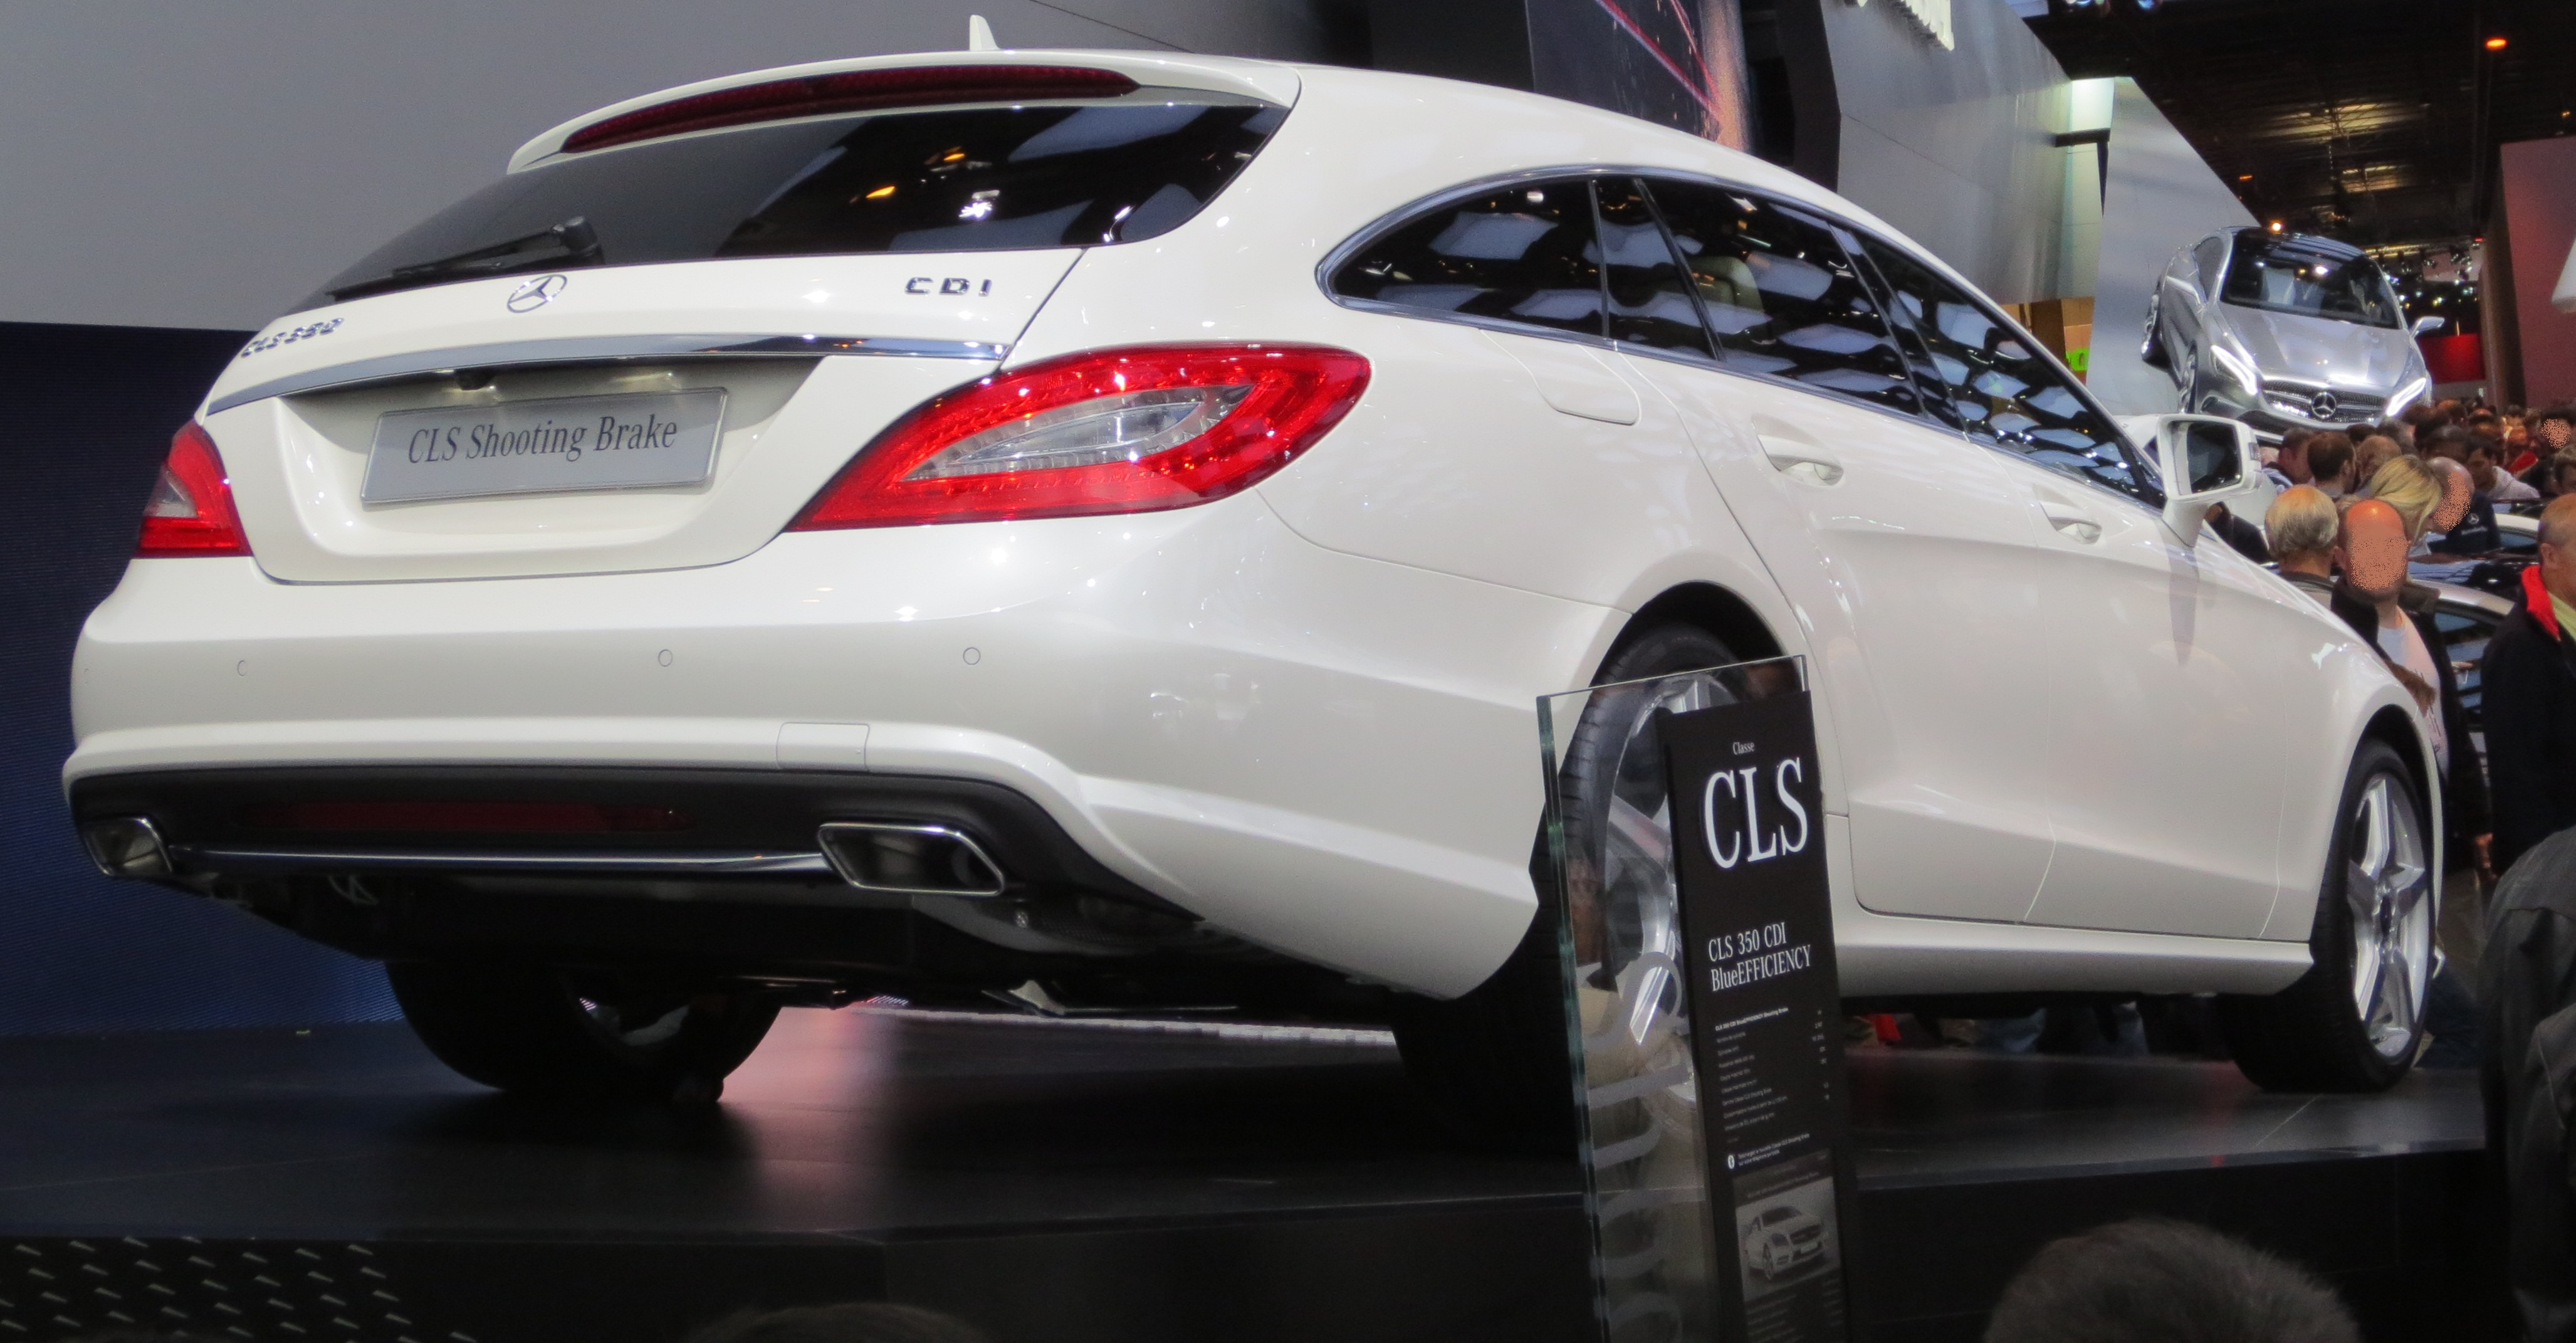 File:Mercedes-Benz CLS-Shooting Brake Rear.JPG - Wikimedia Commons